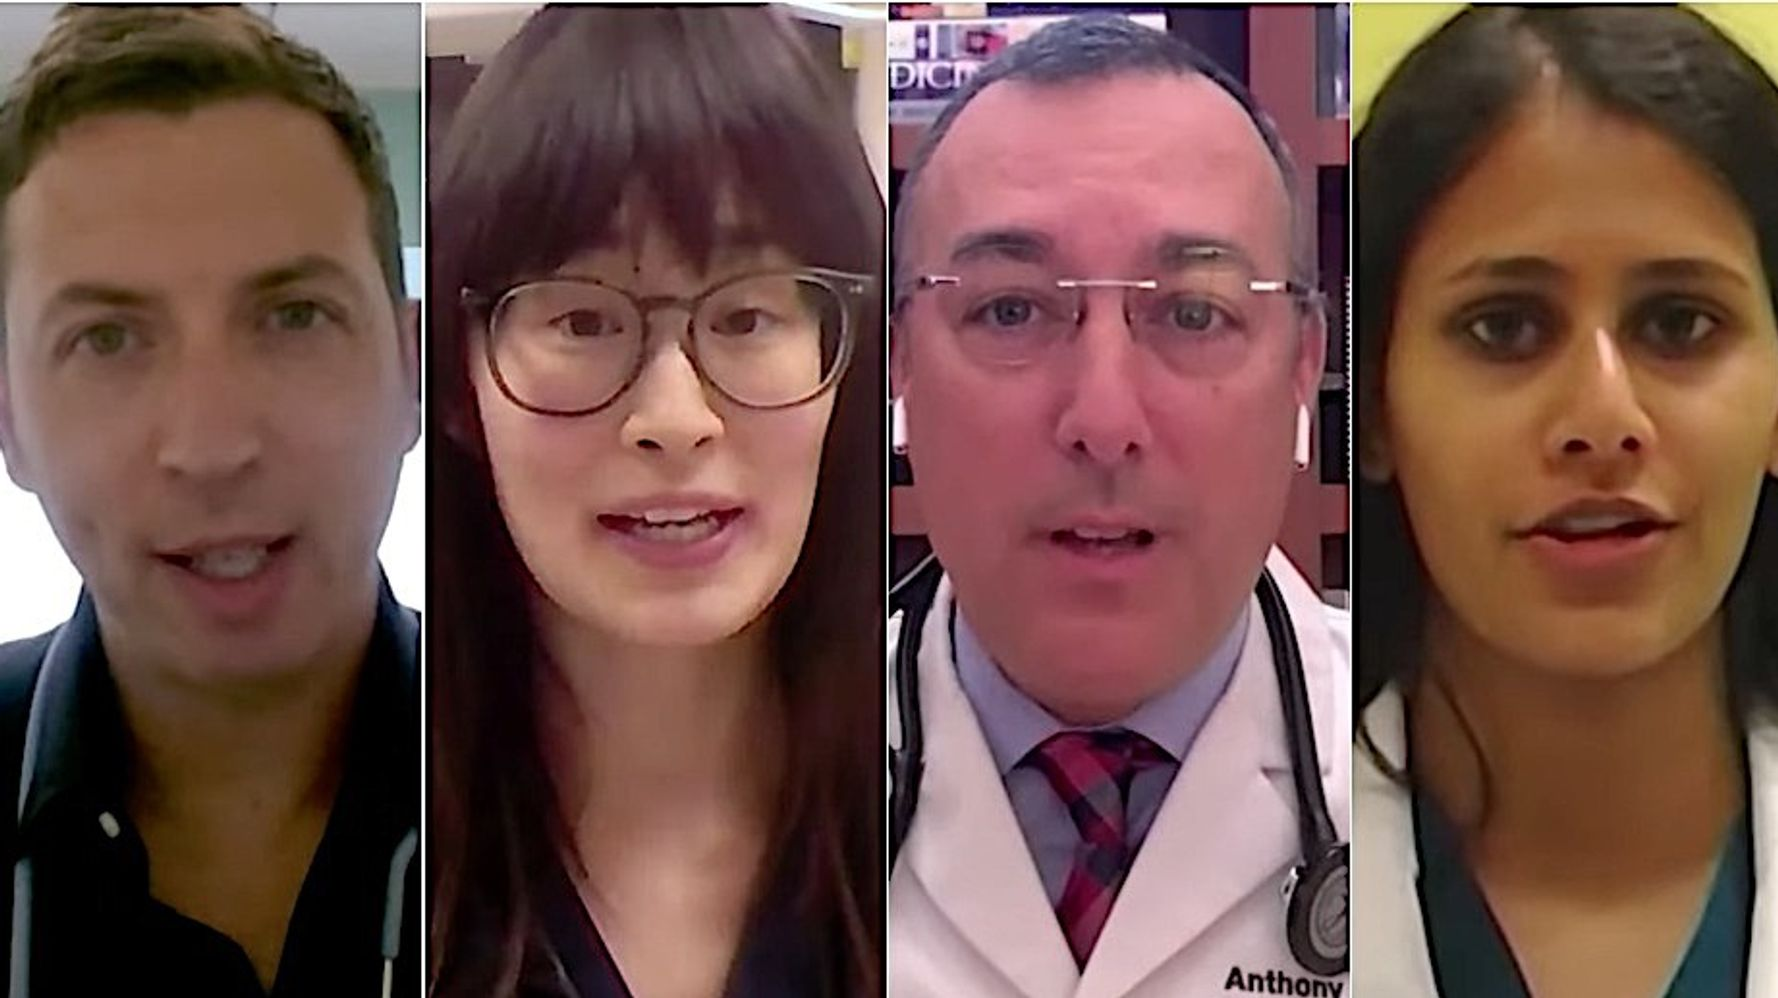 Docs Reveal How They Really Feel About Anti-Vaxxers In Scathing Kimmel Segment